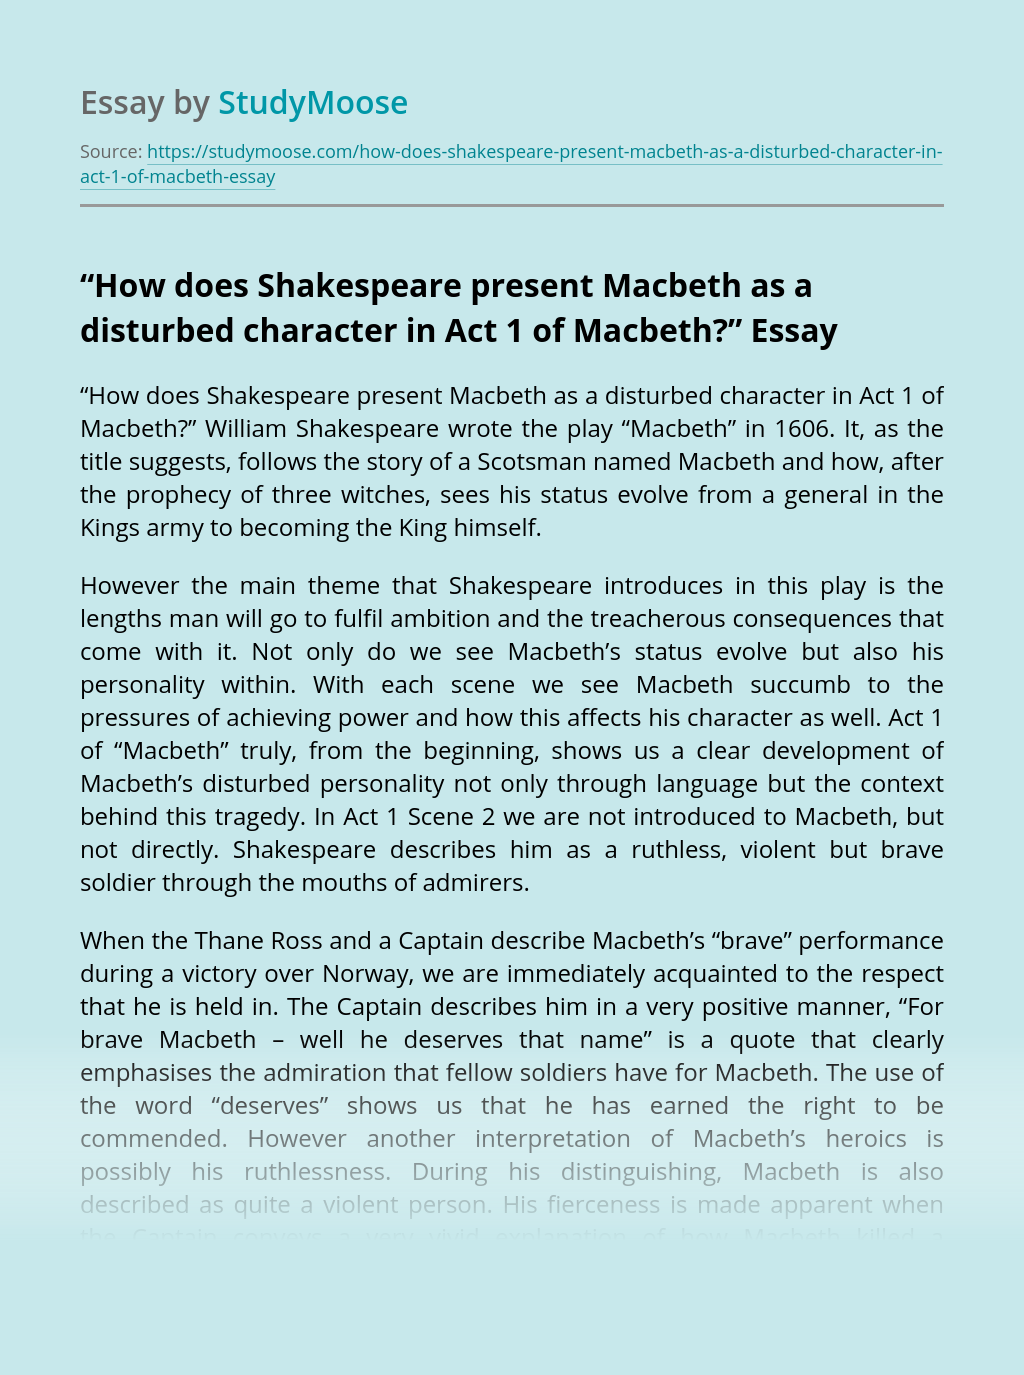 """""""How does Shakespeare present Macbeth as a disturbed character in Act 1 of Macbeth?"""""""